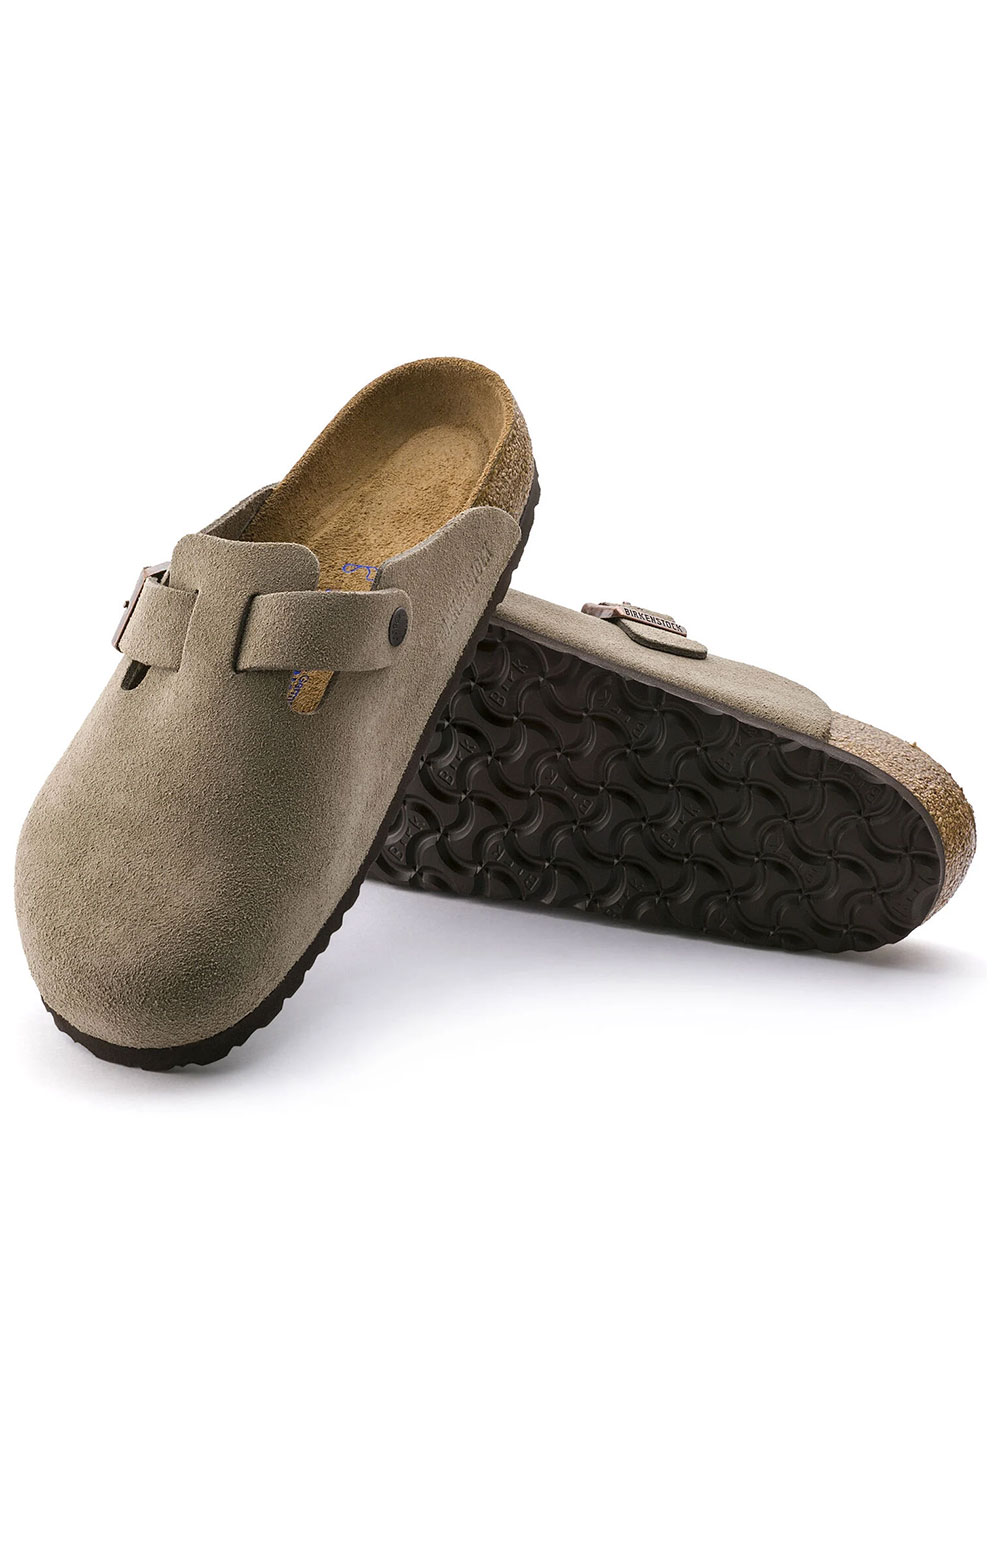 (0560771)Boston Soft Footbed Sandals - Taupe Suede  5